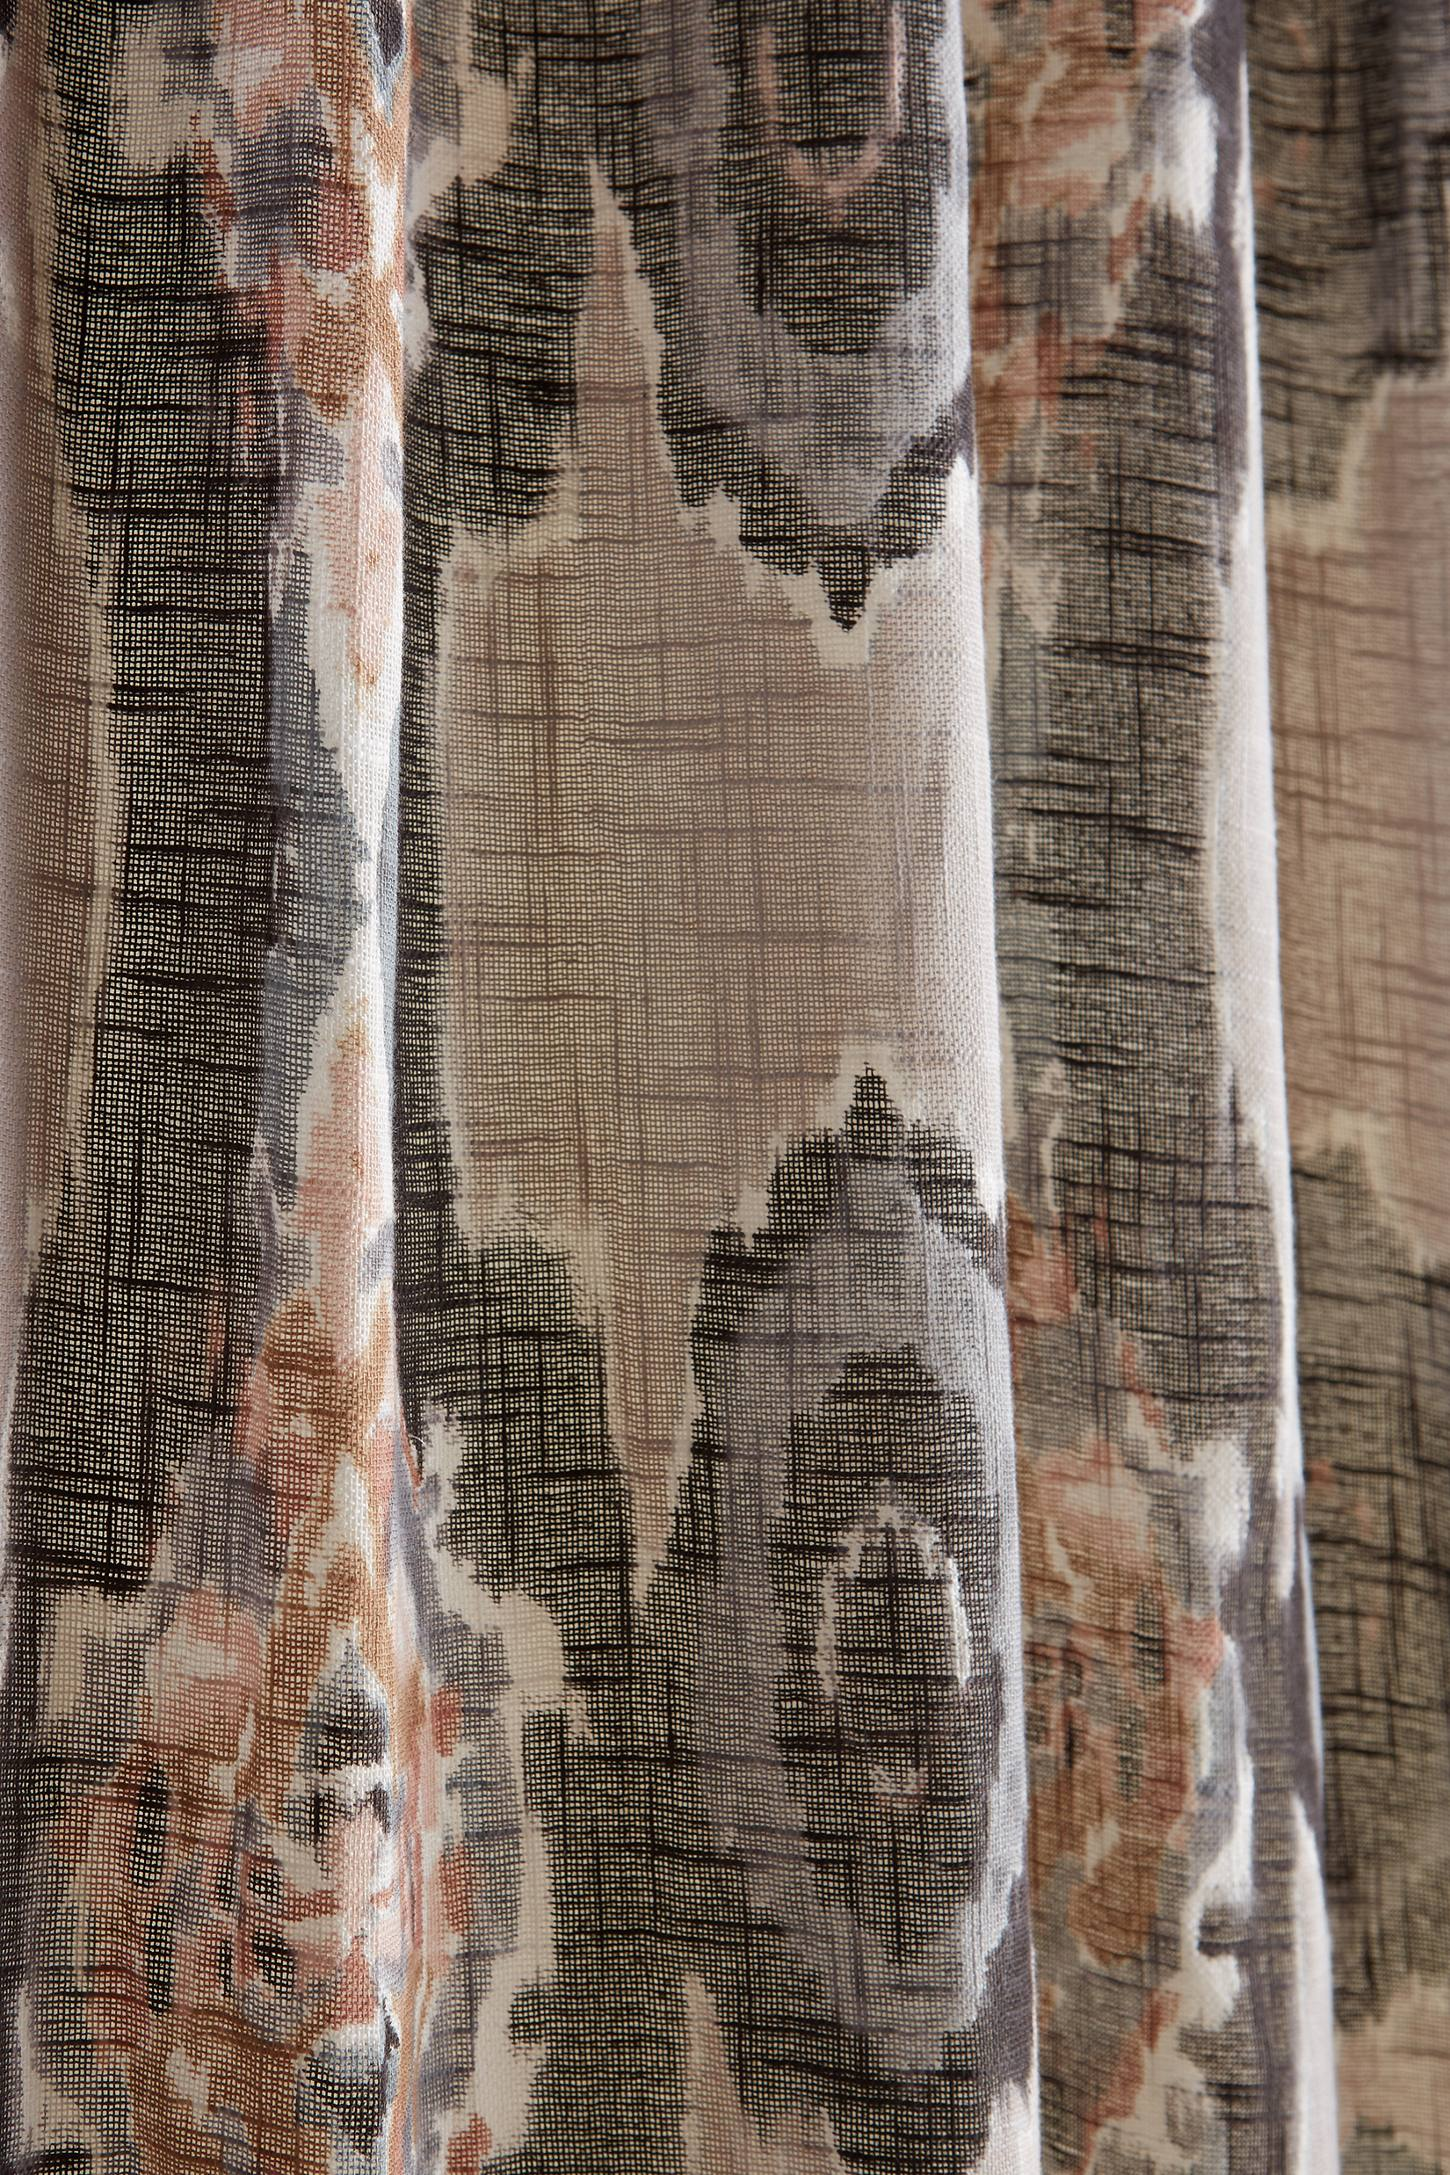 Slide View: 2: Stretched Ikat Curtain